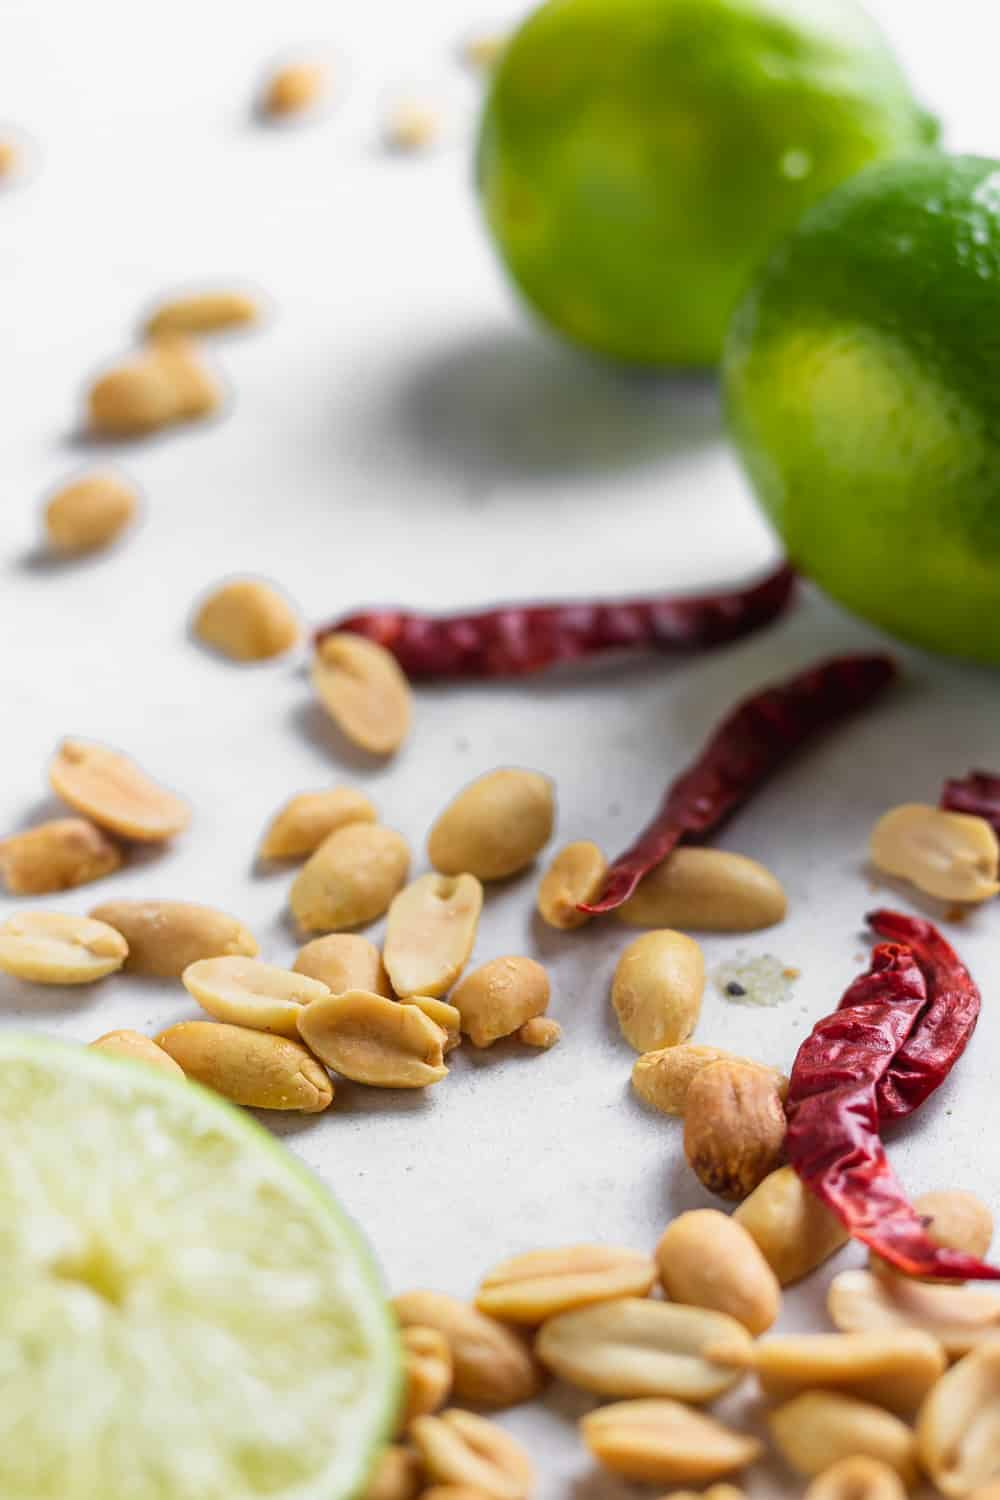 peanuts, chilis, and lime